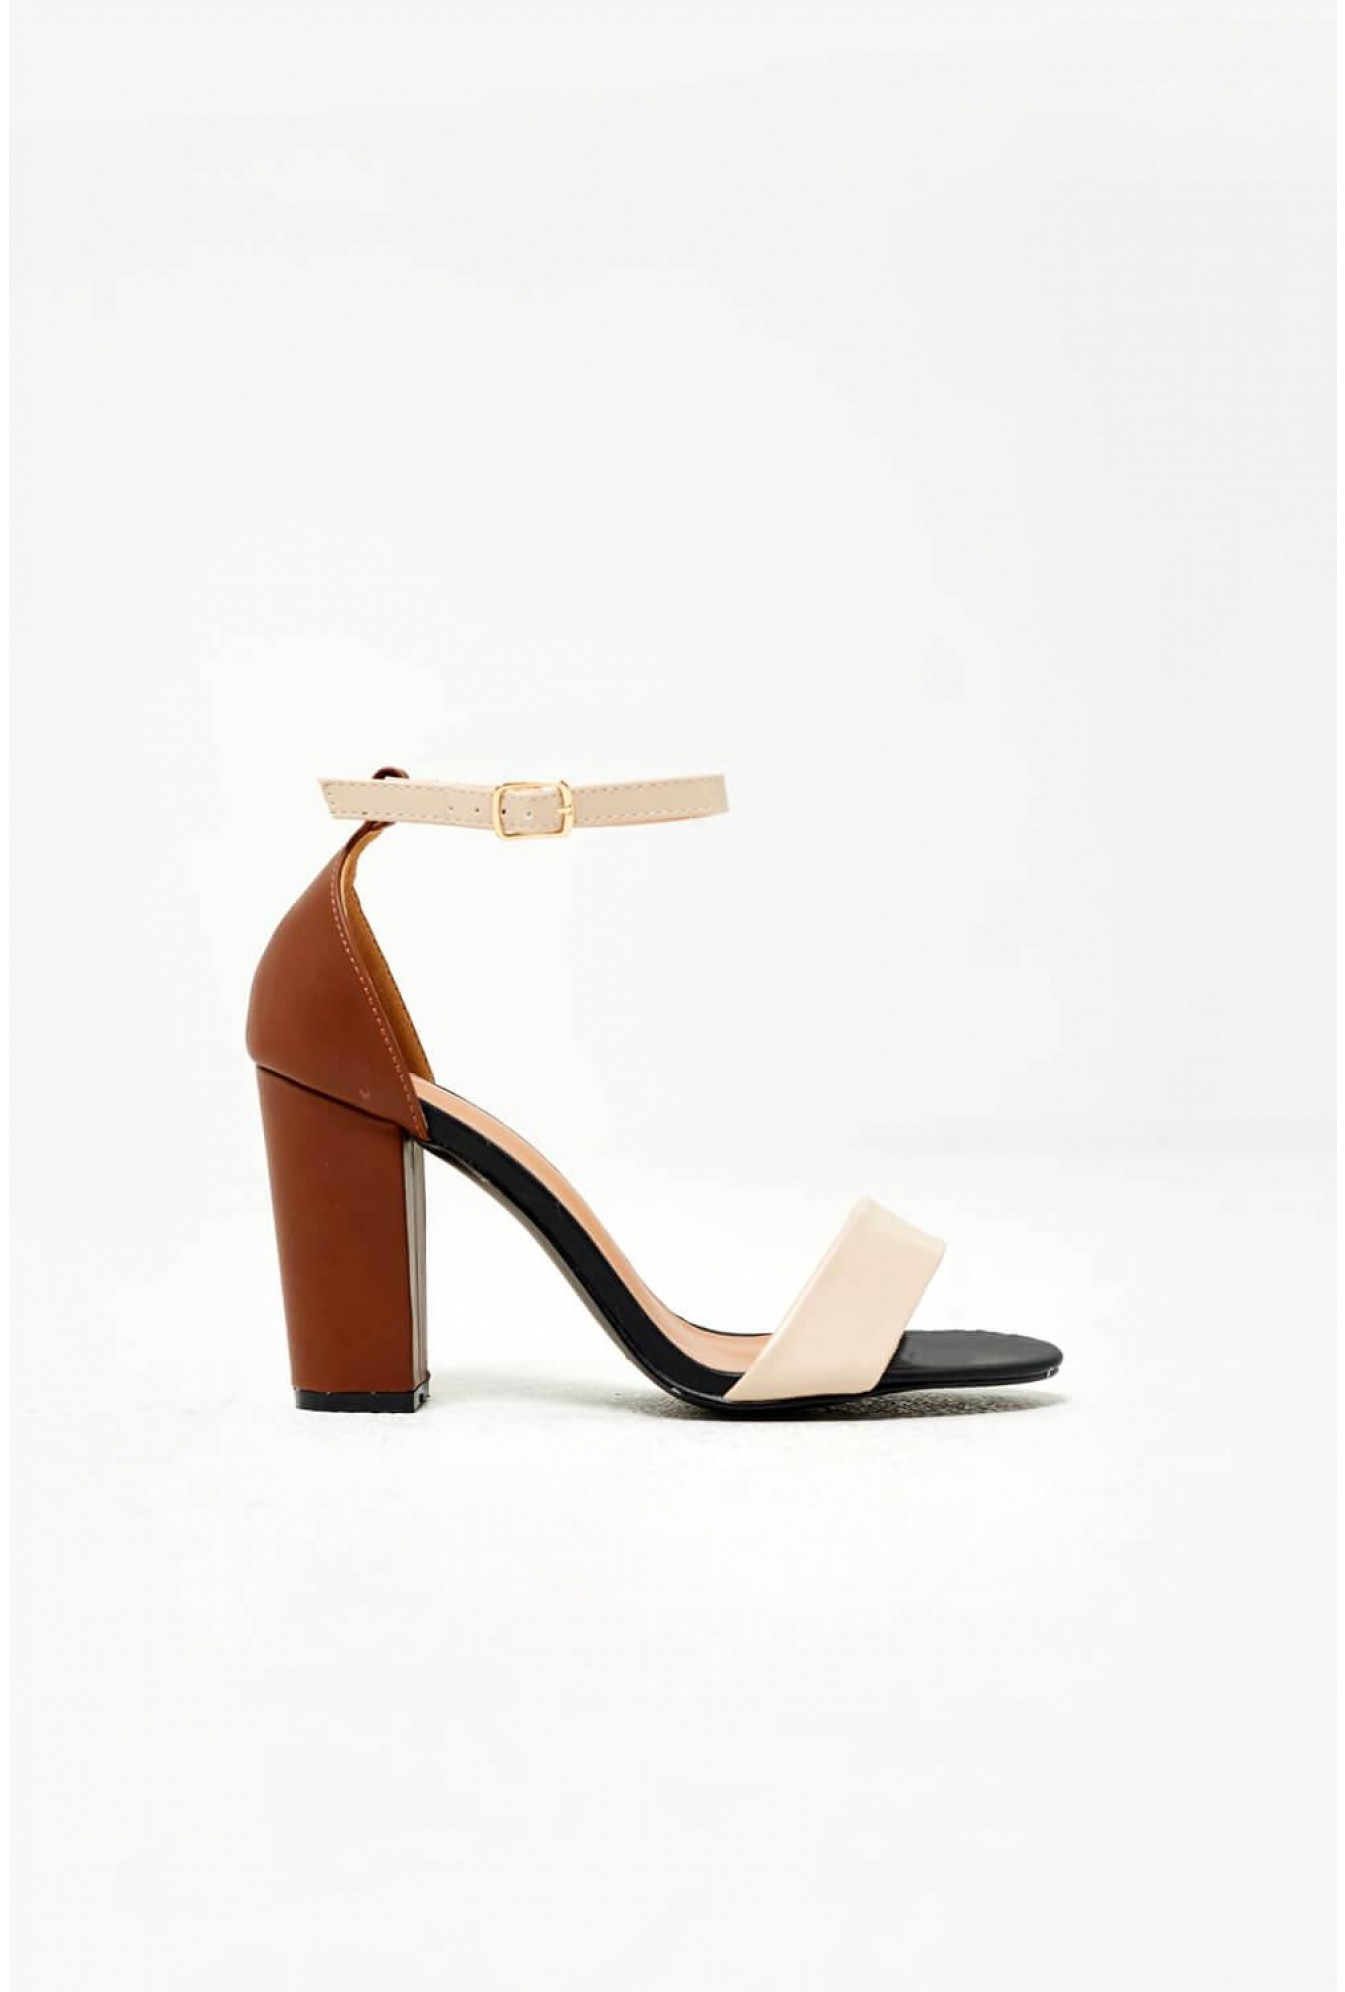 a63a82069cd0 No Doubt Orin Block Heeled Sandals in Brown